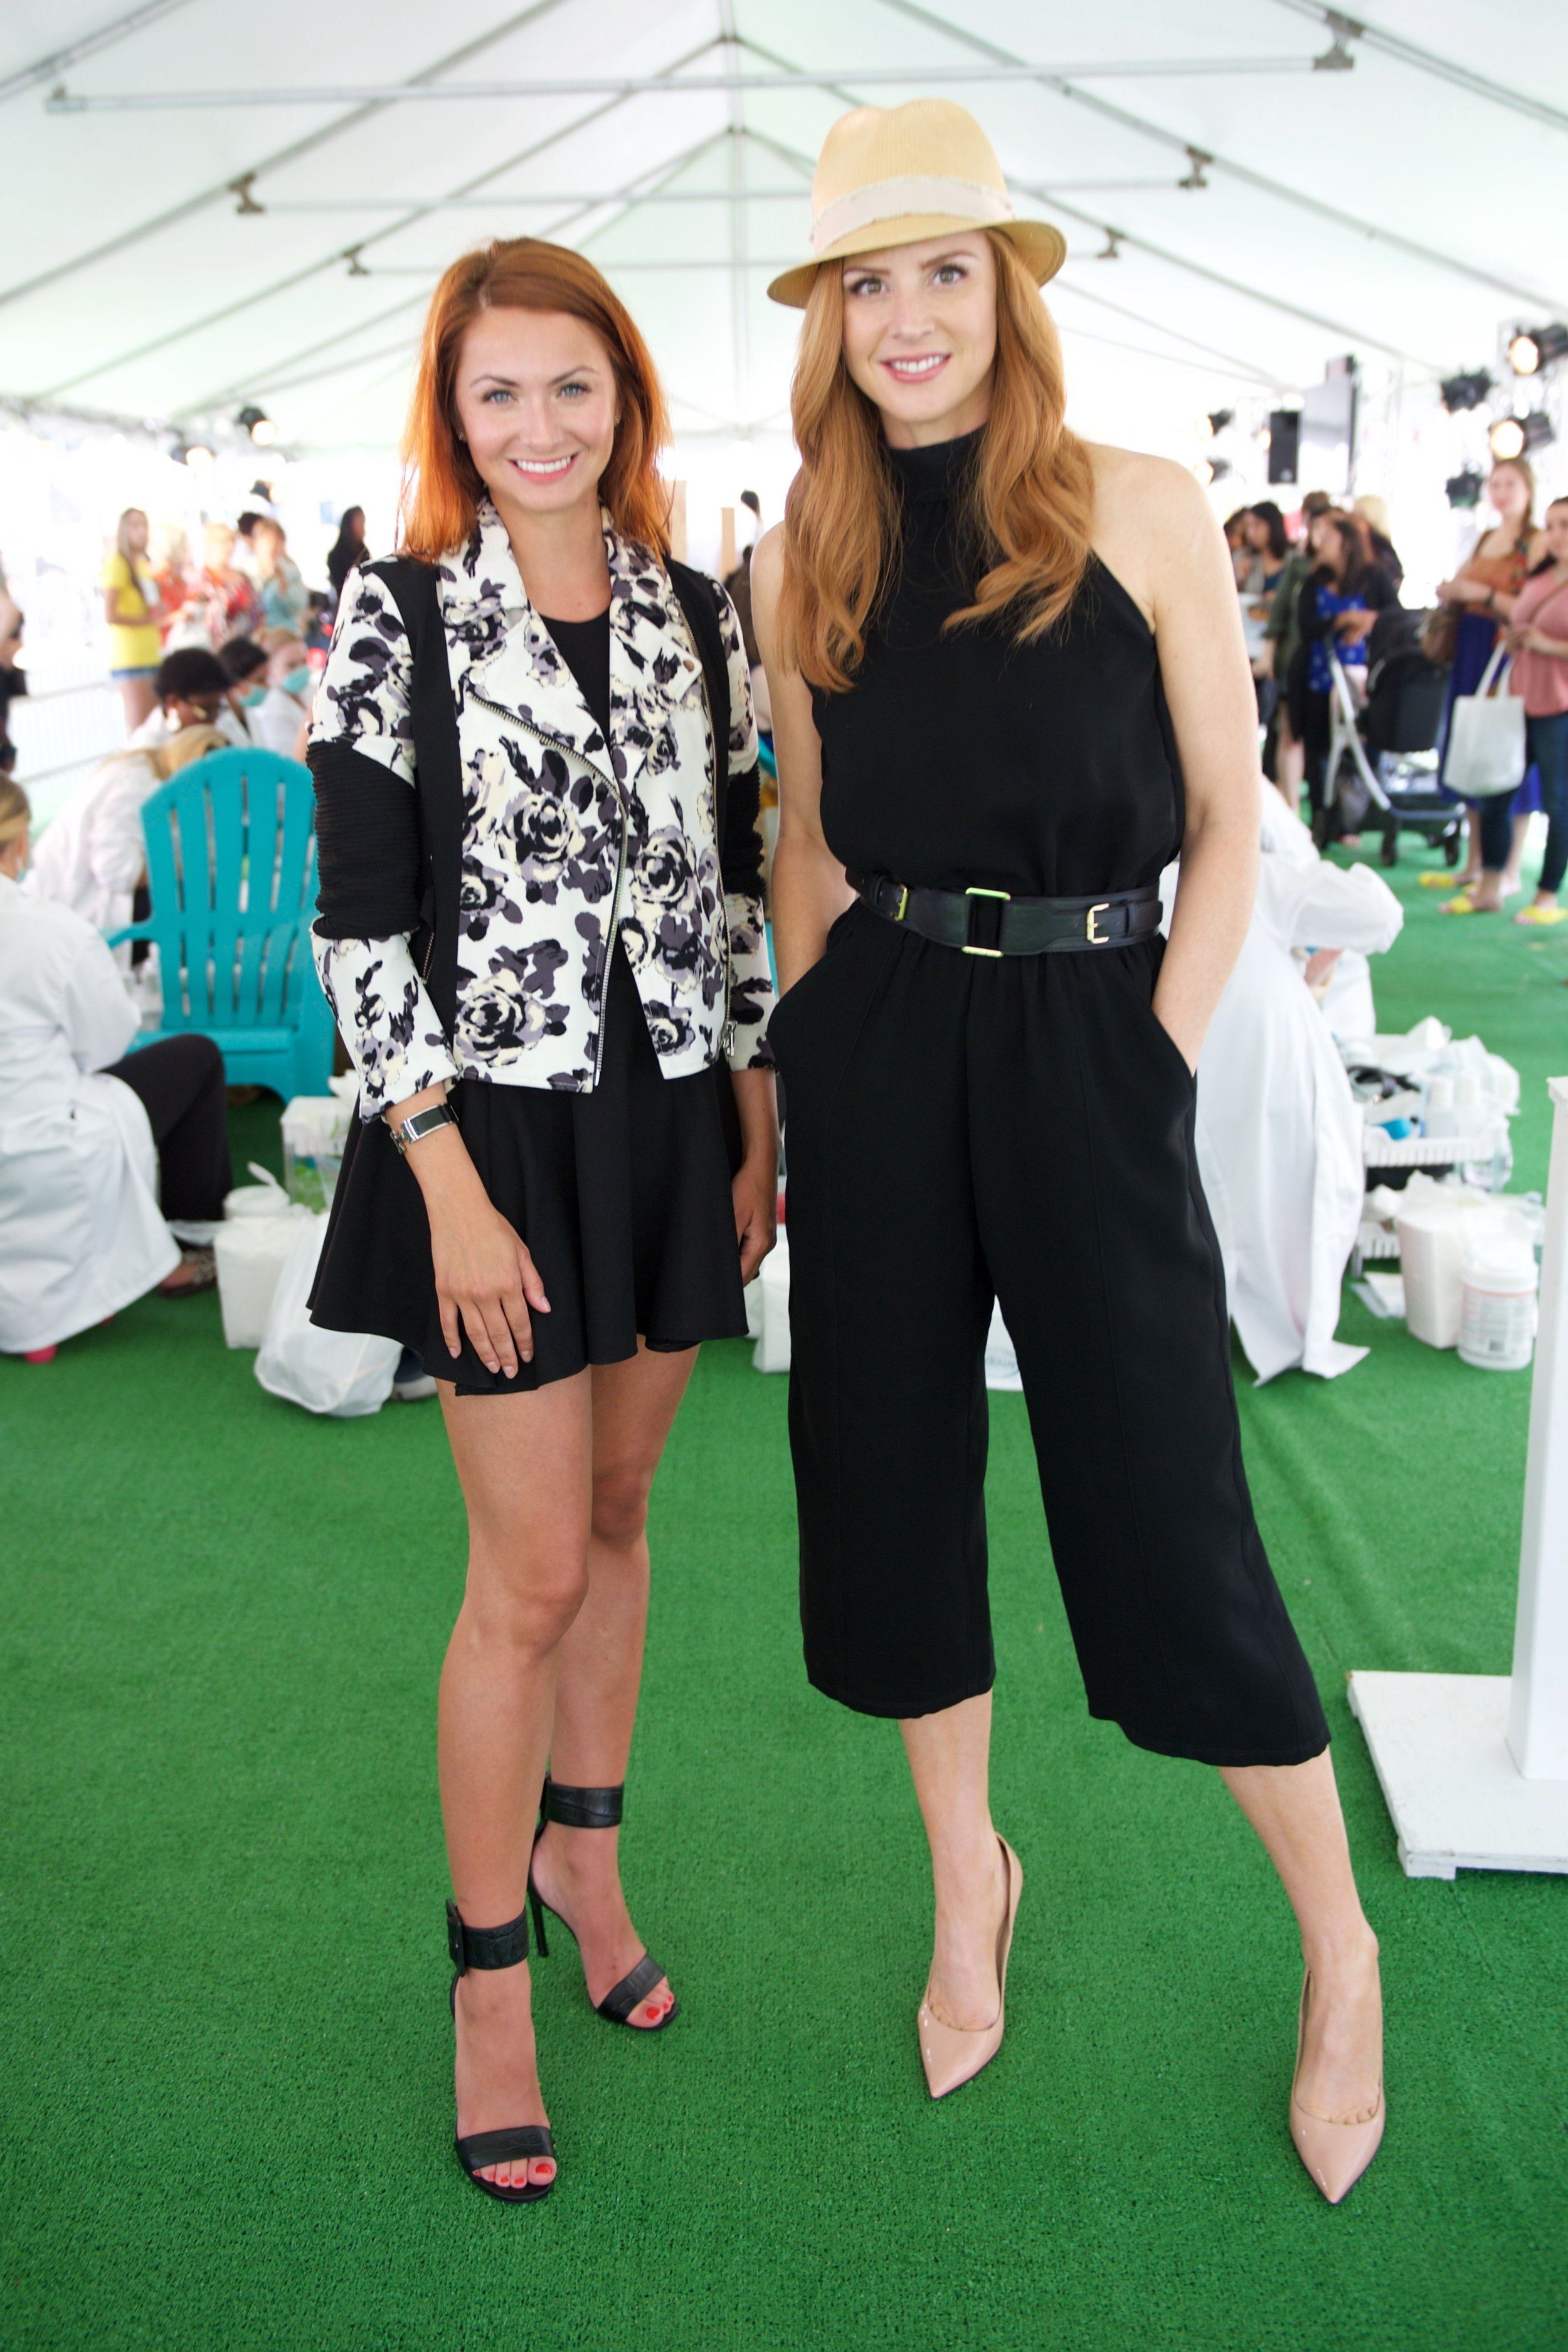 Amope-YD-Square-Event-Selects-3.jpg